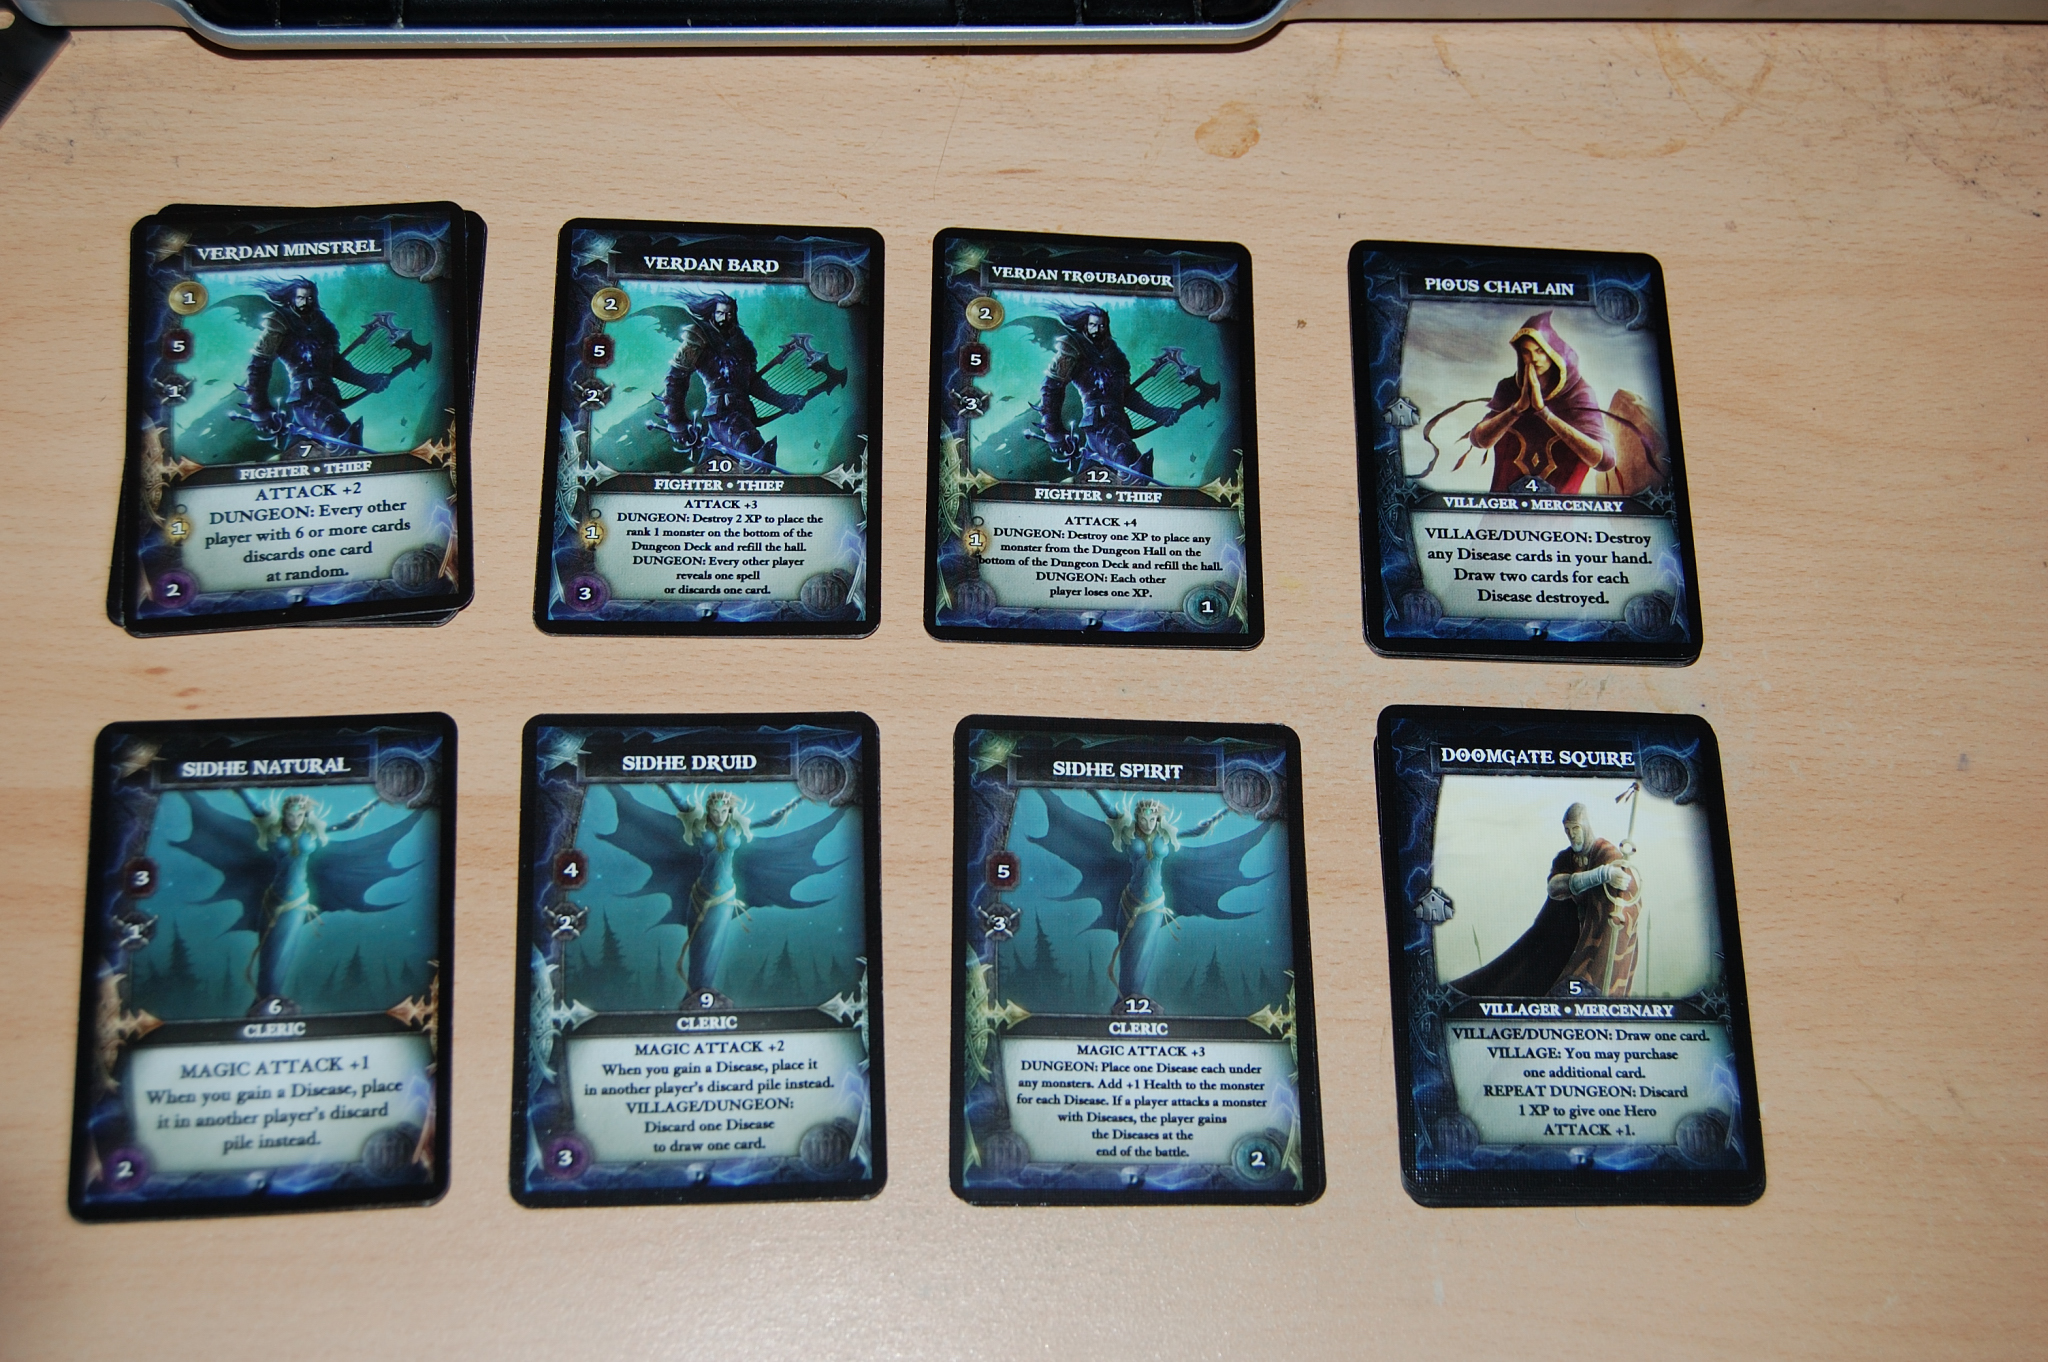 deeper and deeper thunderstone doomgate legion review the